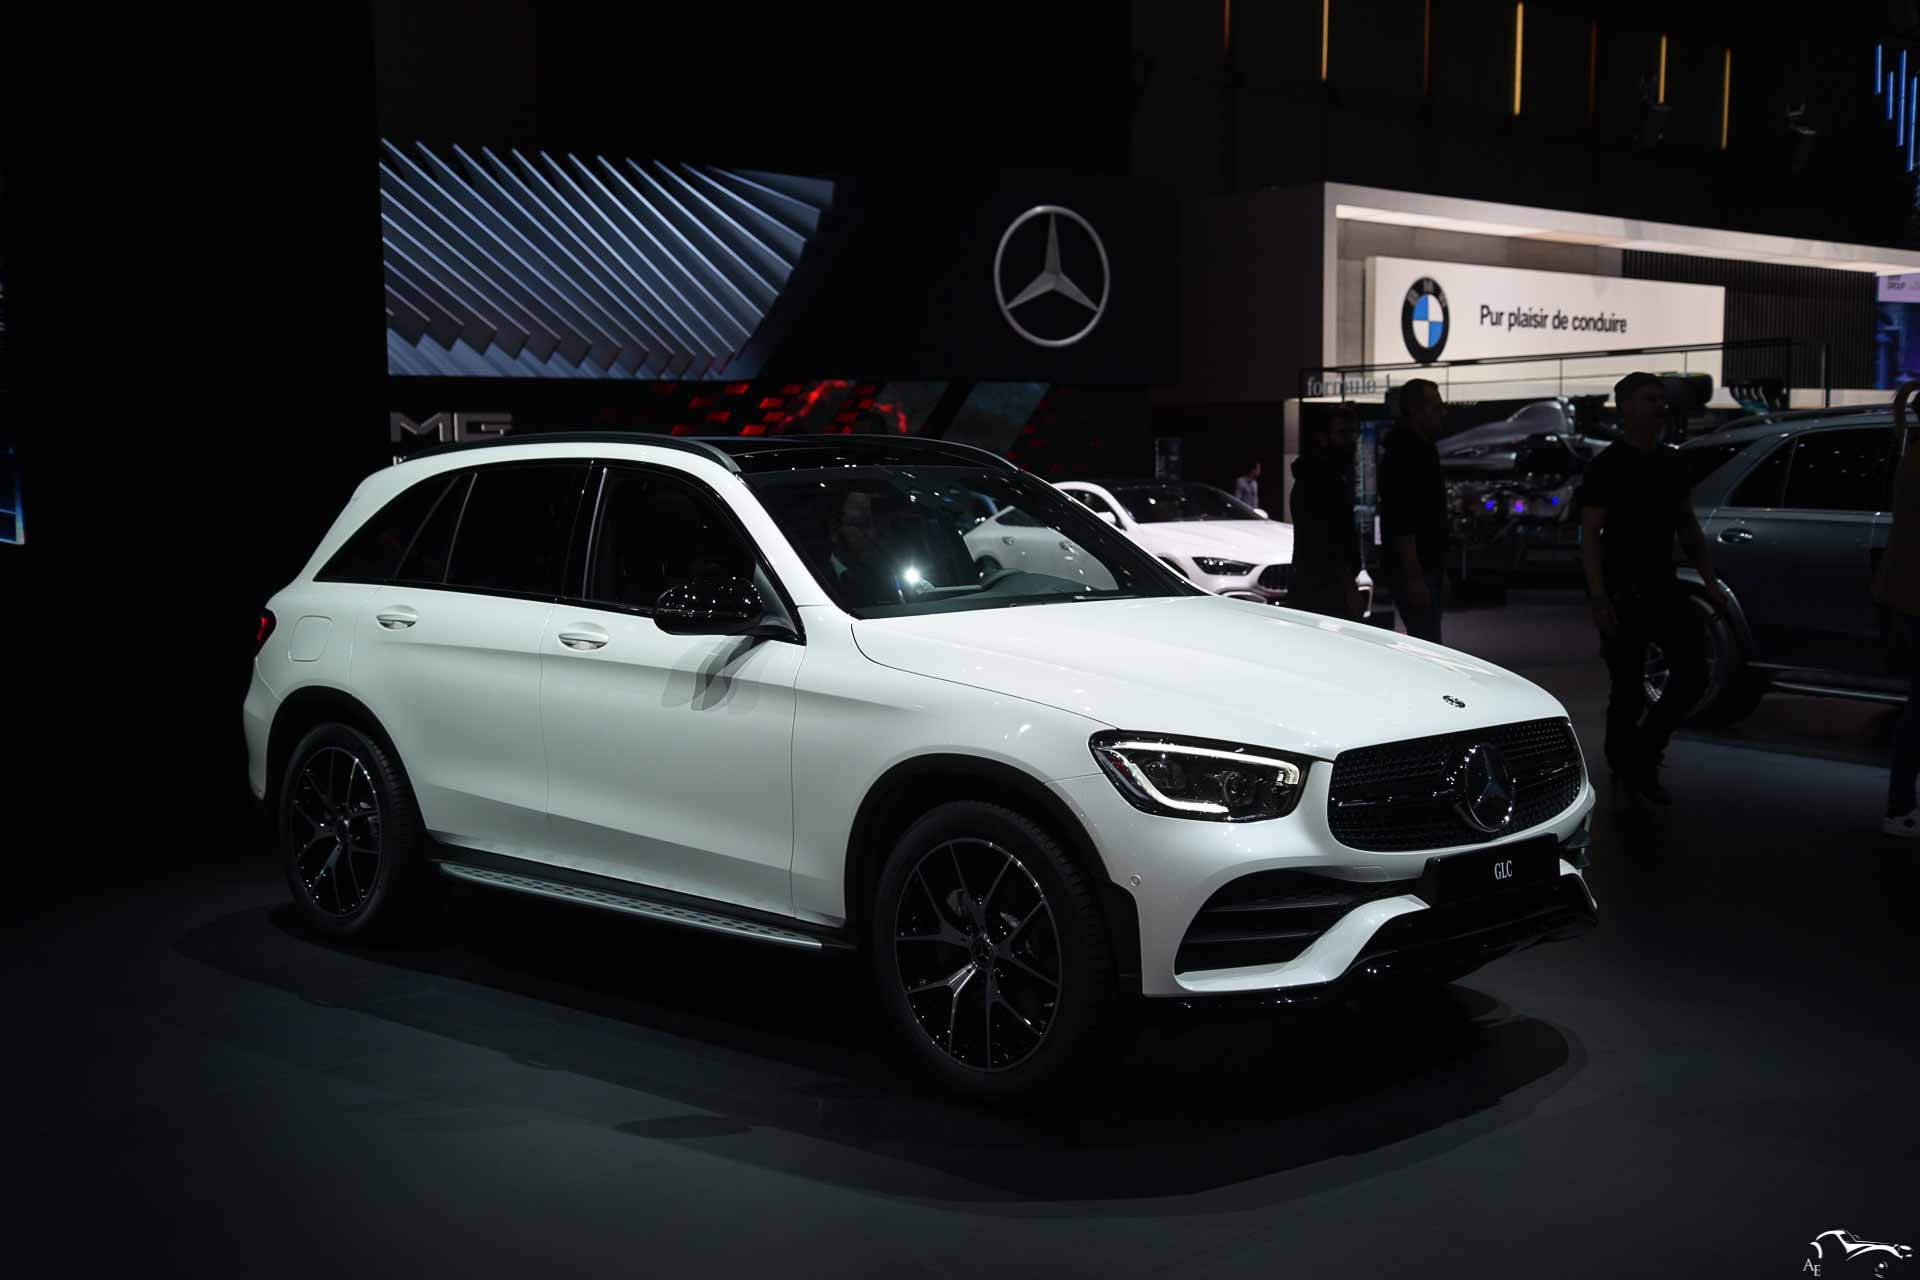 Merceds-Benz GLC